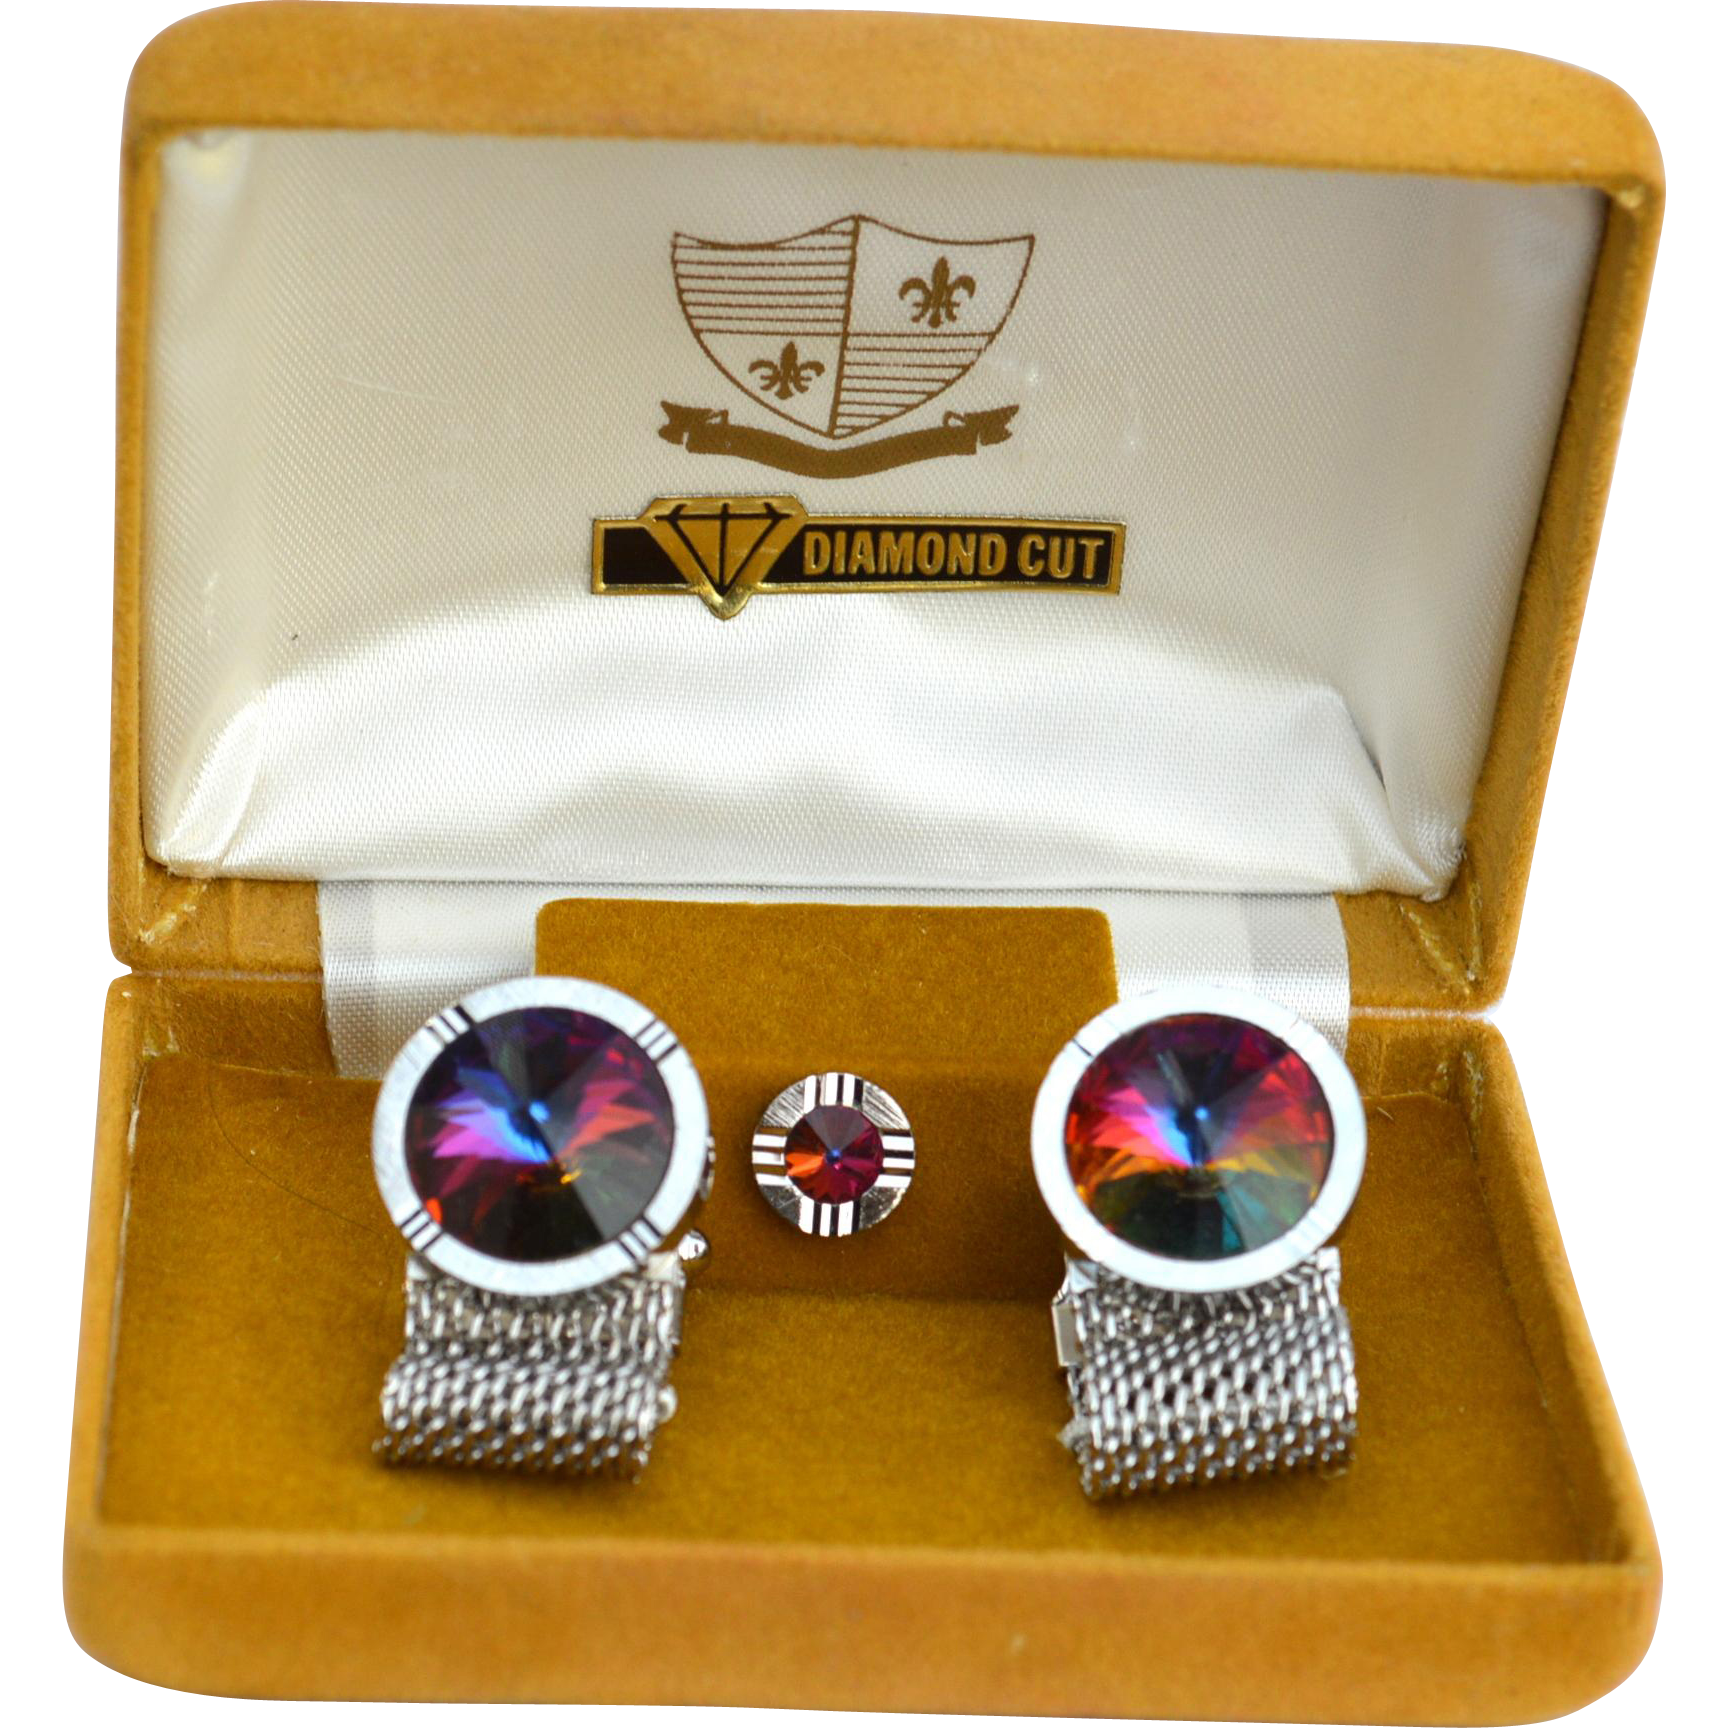 Vintage Diamond Cut Rivoli Cufflink Set, Mesh Wrap Cuff Links and Tie Pin, Original Box